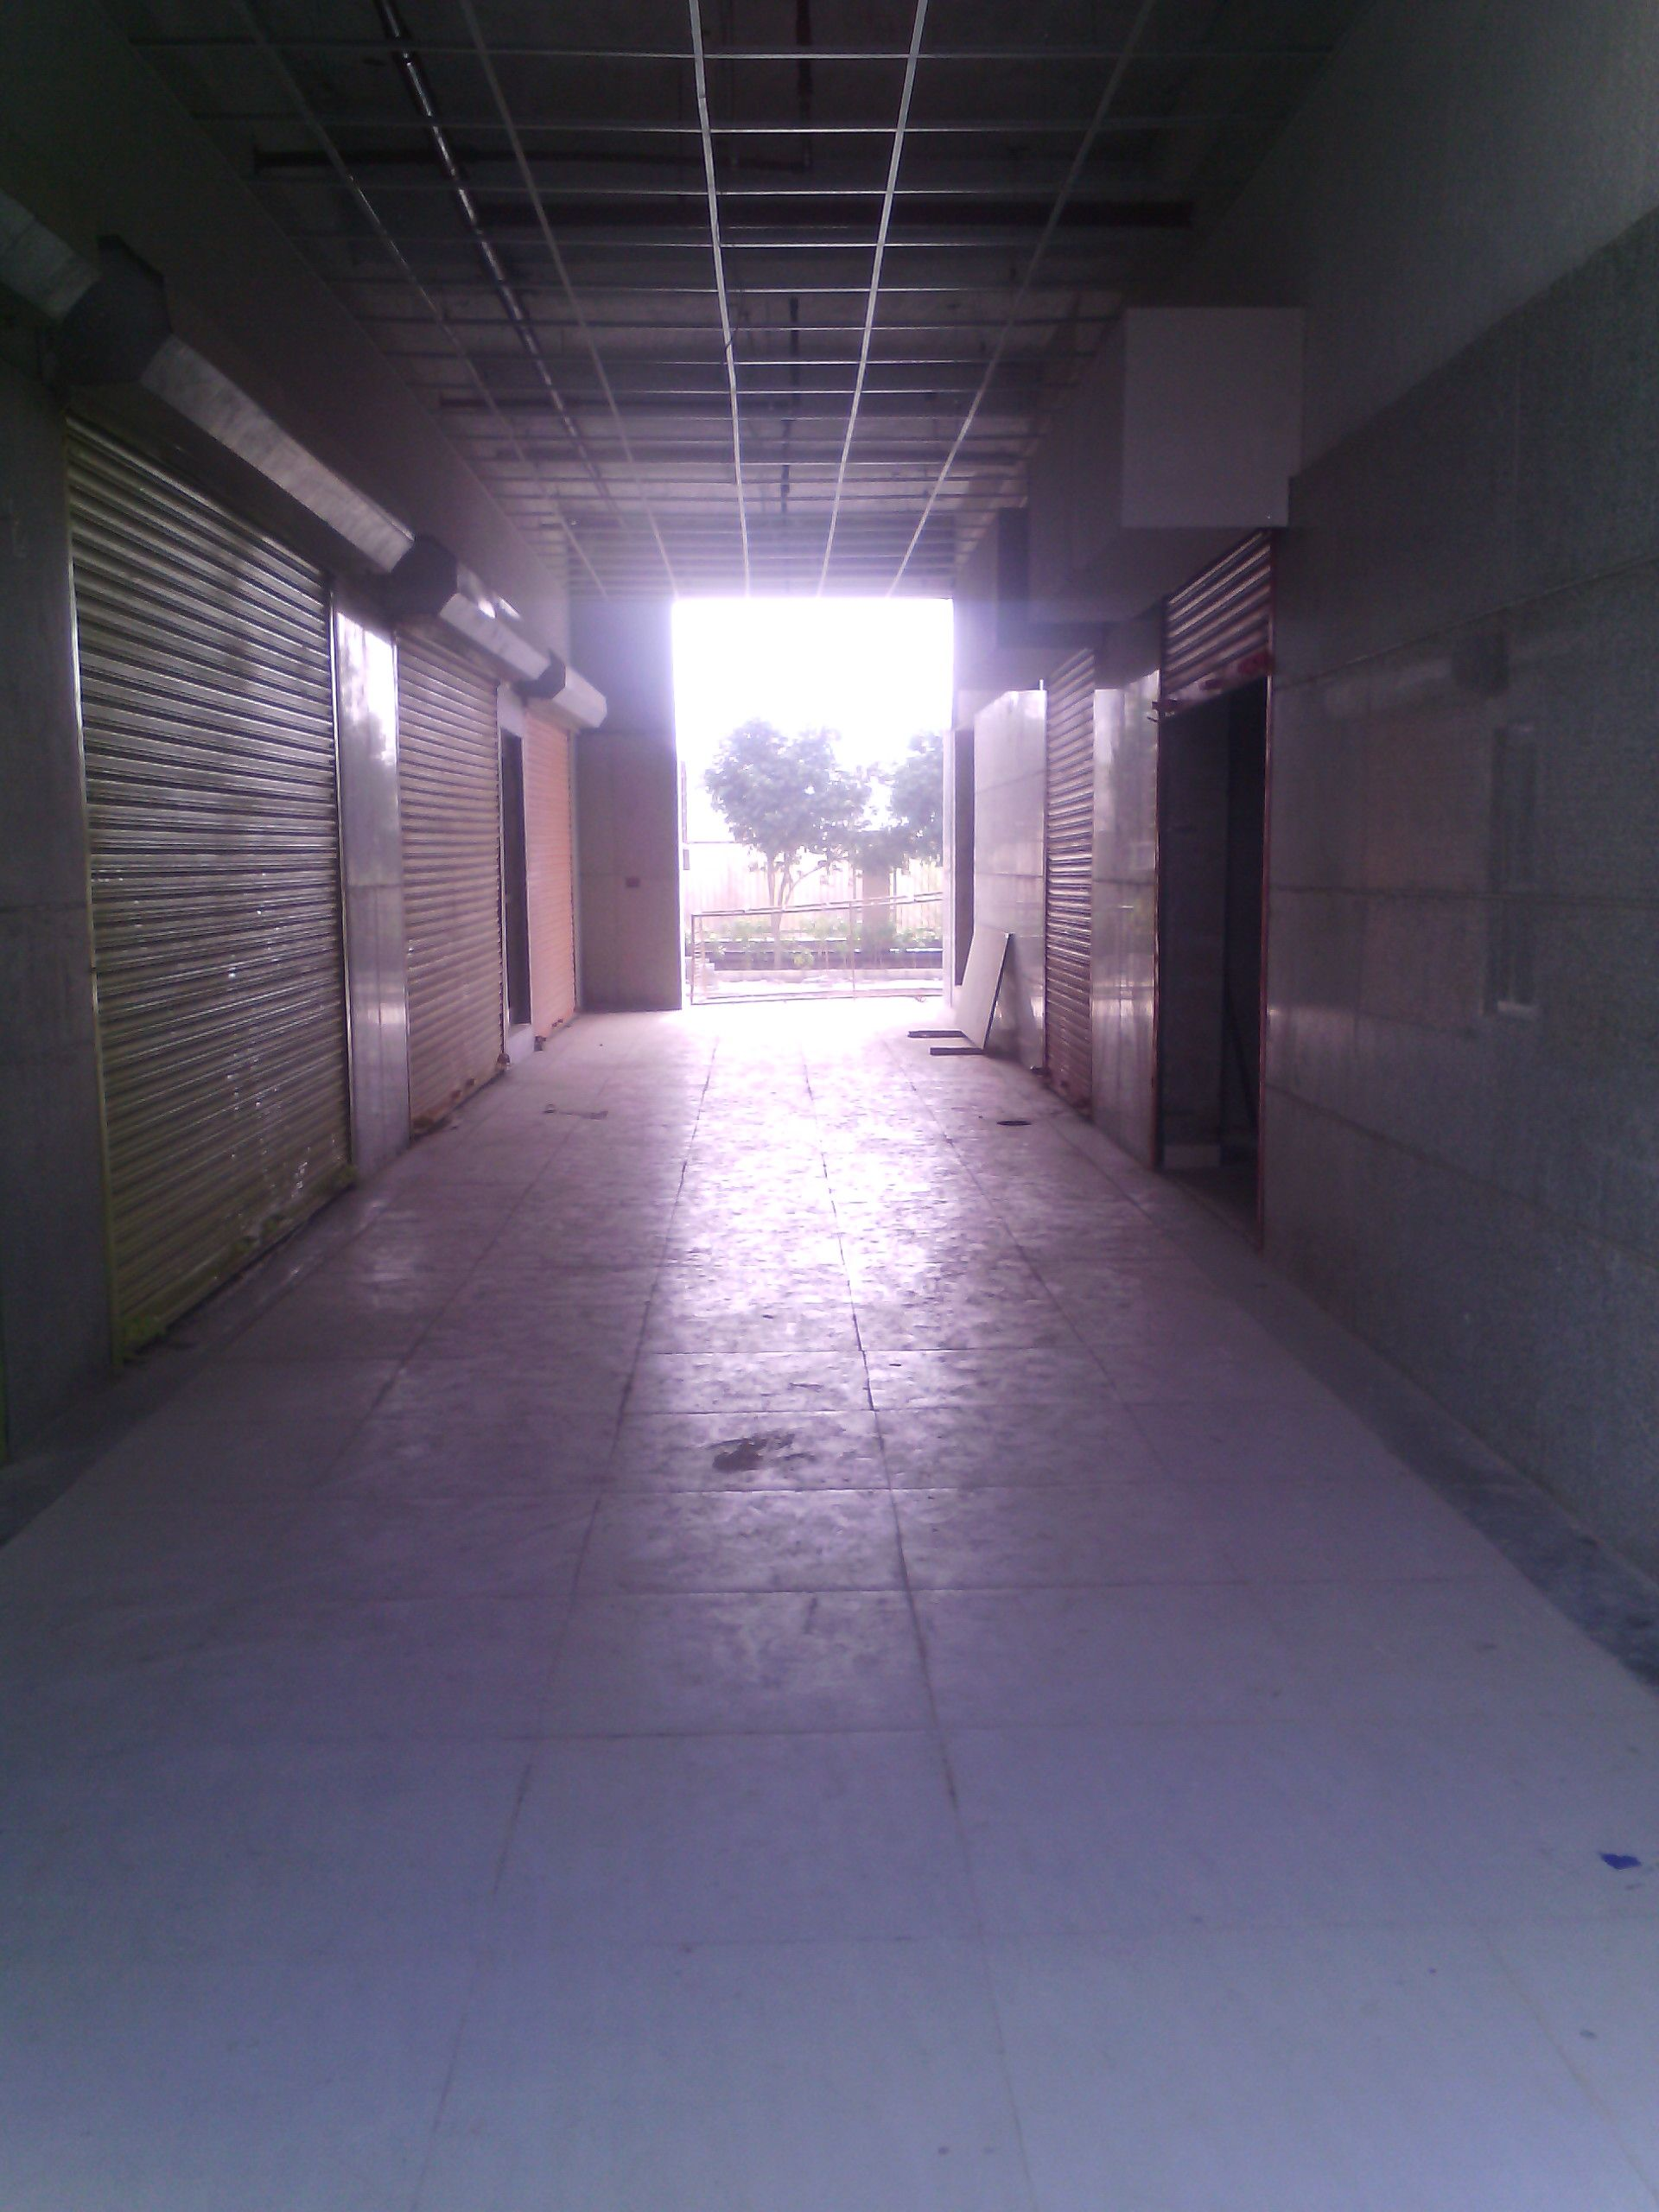 Shops for rent Rodeo Drive South city 2 Gurgaon, - http://www.kothivilla.com/properties/shops-rent-rodeo-drive-south-city-2-gurgaon-2/